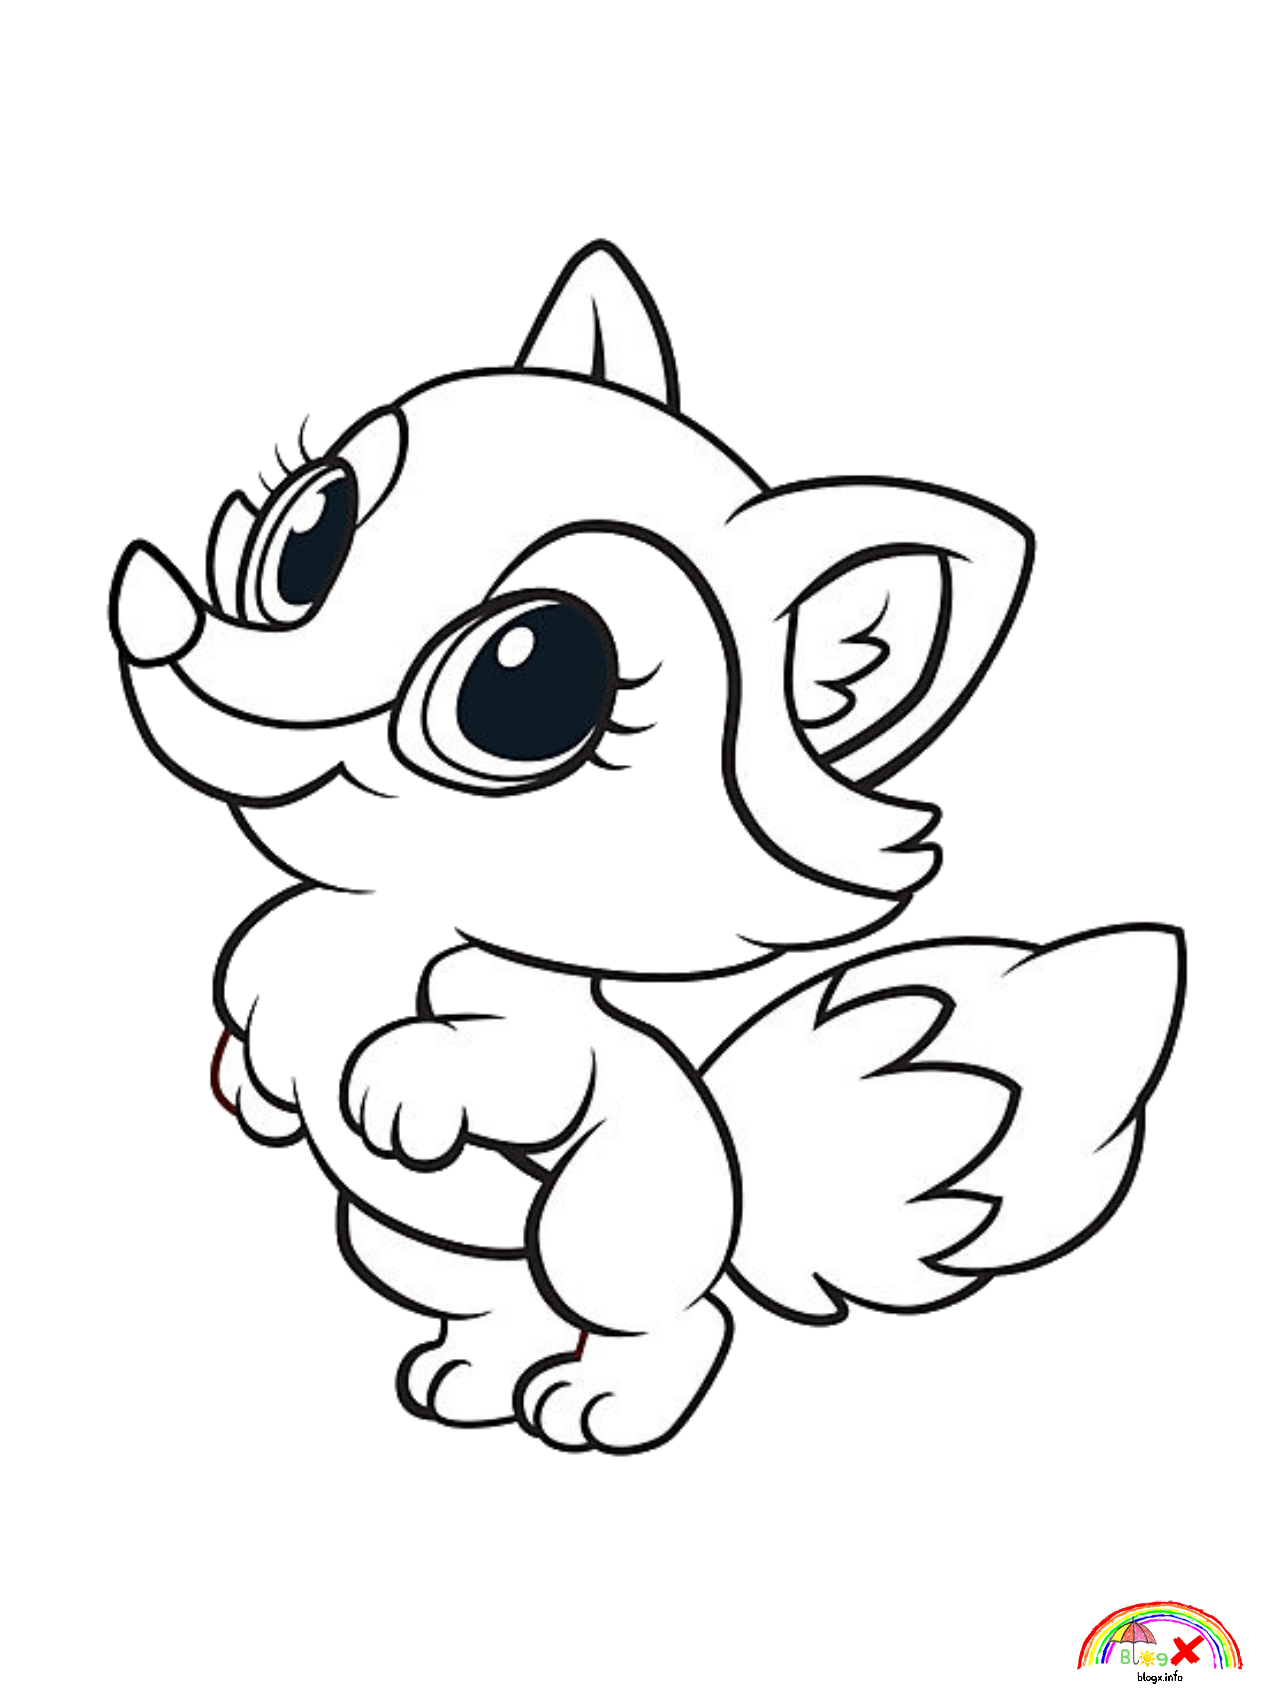 Pin By Cecilia Pimental On Dibujar Animalitos Fox Coloring Page Cute Coloring Pages Animal Coloring Pages